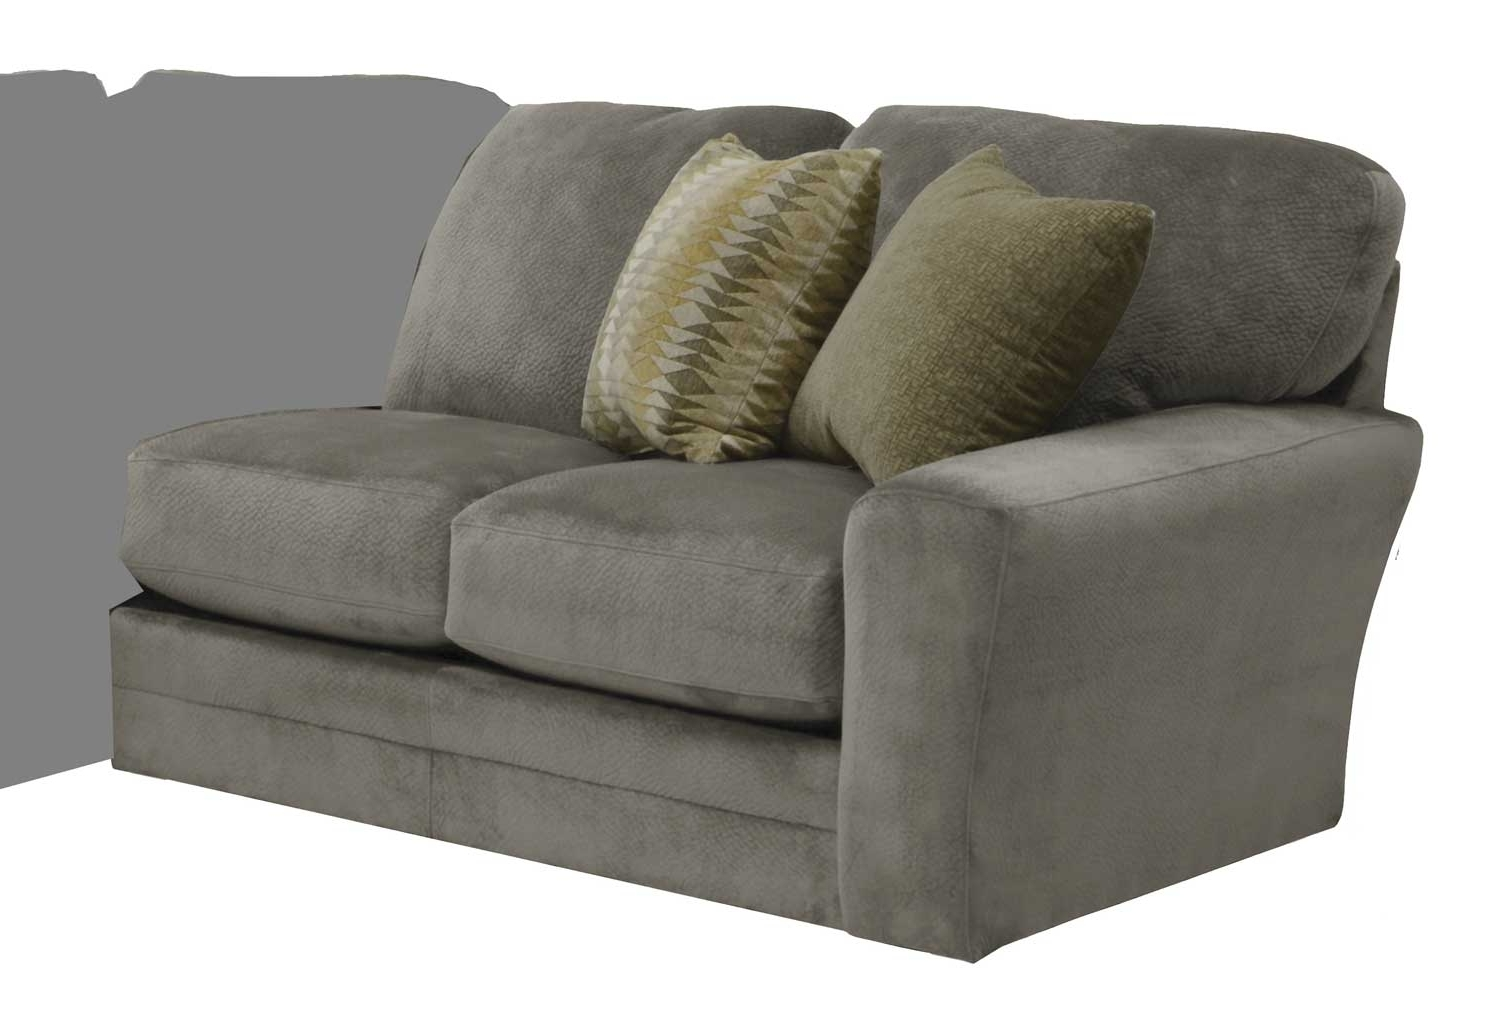 Sofas With Removable Cover Pertaining To Preferred Removable Cover Sofa – Home And Textiles (View 5 of 15)